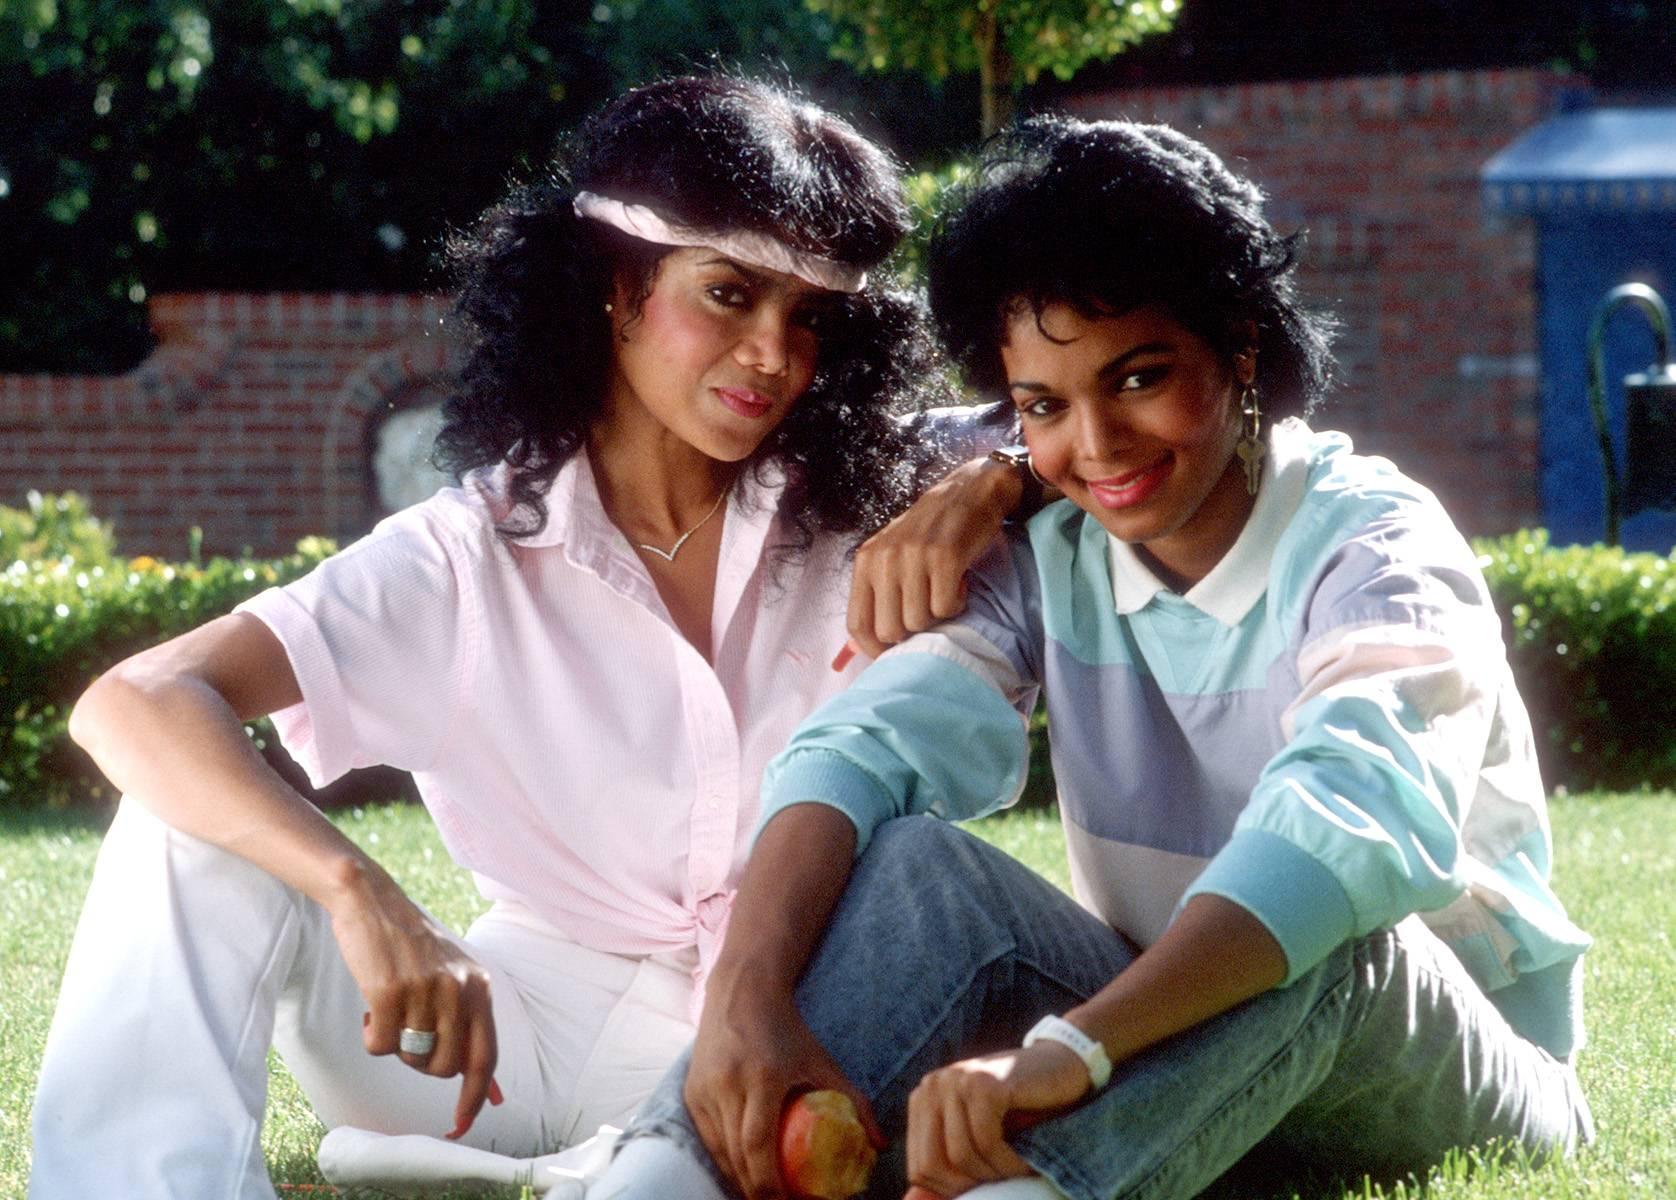 The Jackson Family  - La Toya was born into the No. 1 American music family, the Jacksons. Coming from an extraordinarily talented family, La Toya was expected to be a part of the music business. She made it her duty to tour and perform in over 90 countries. A true Jackson, she emerged as a successful entertainer, Grammy Award-winning songwriter and much more when it came to her career. (Photo: Michael Ochs Archives/Getty Images)